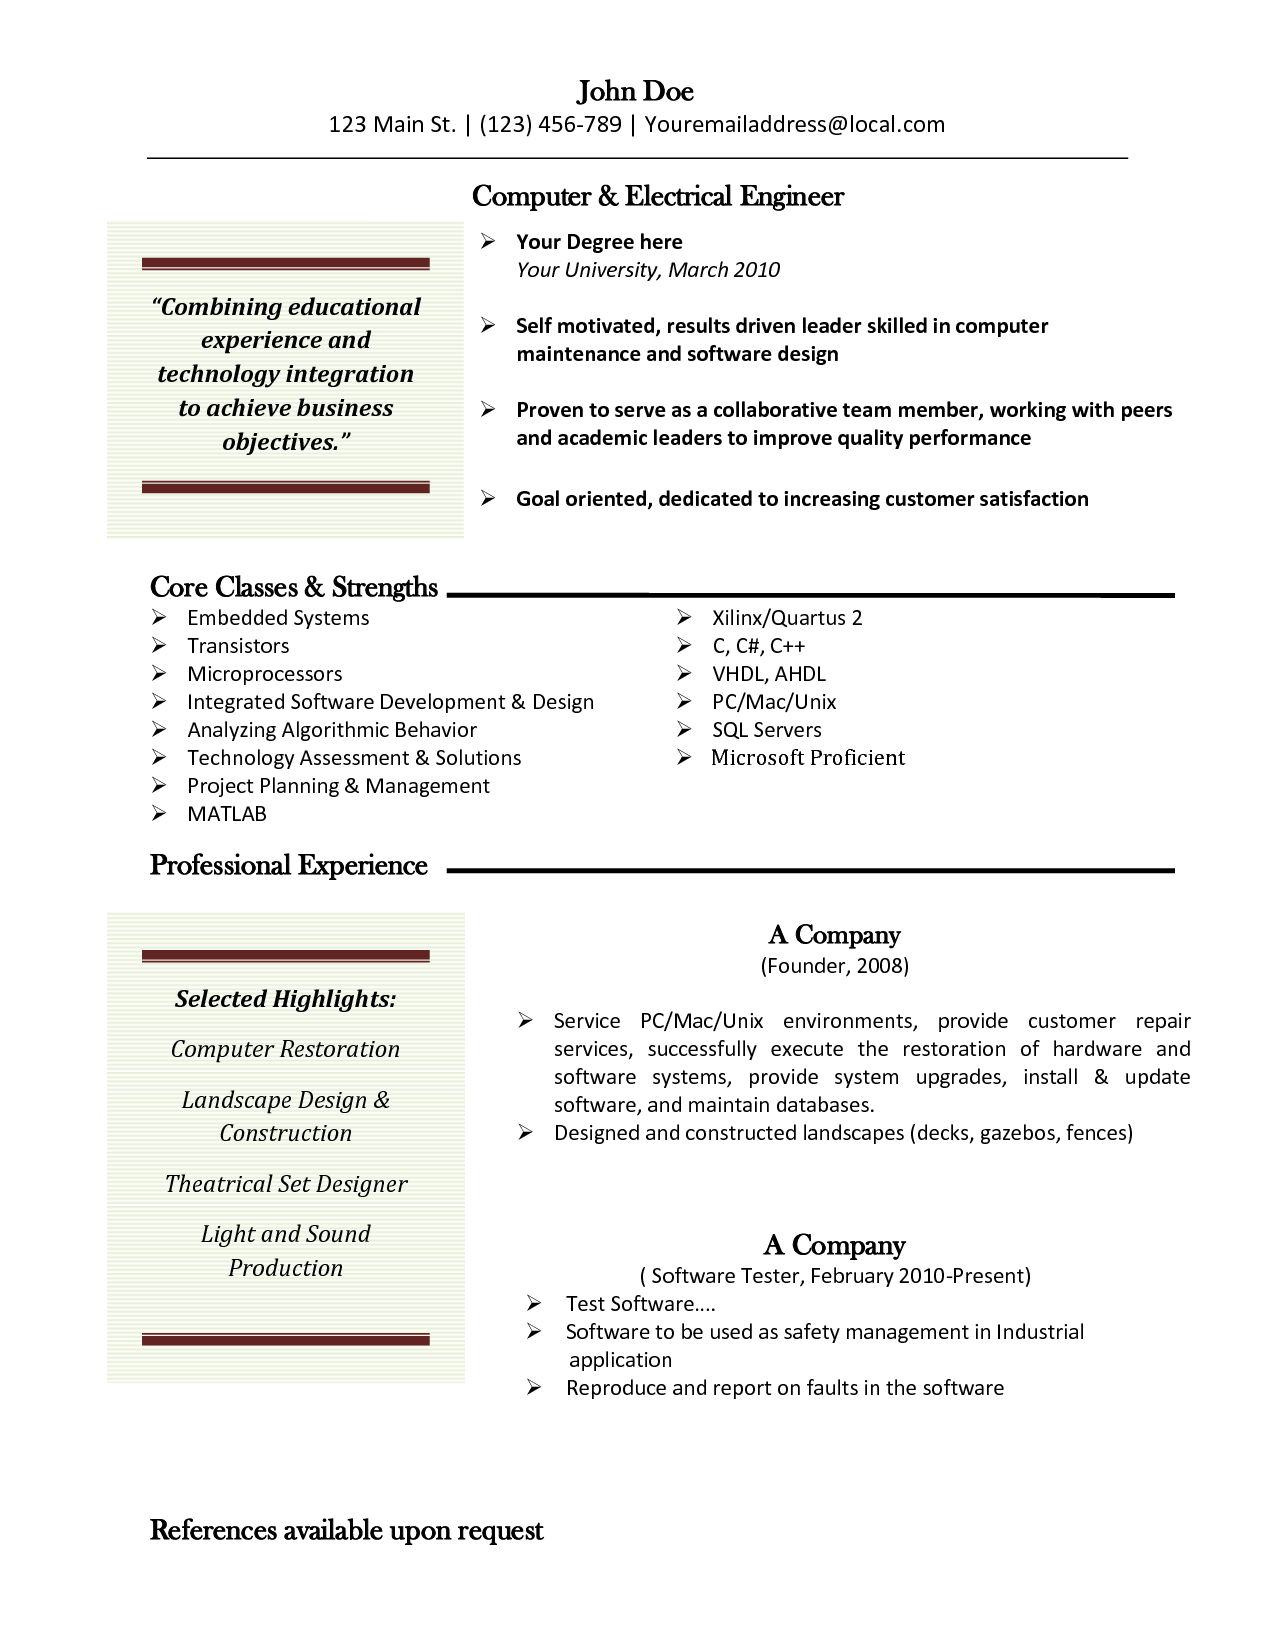 Senior Technical Recruiter Resume  HttpJobresumesampleCom